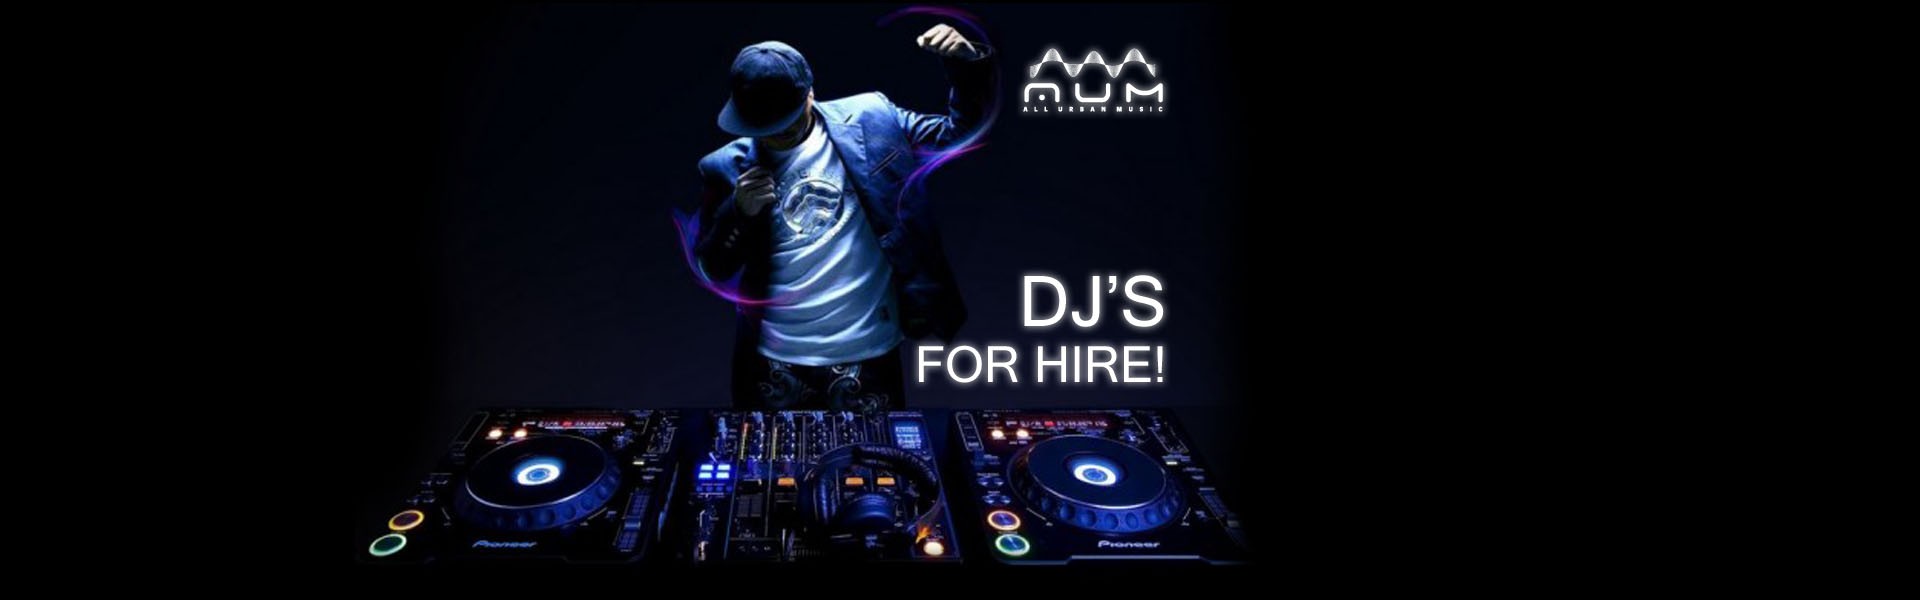 http://www.allurbanmusic.com/wp-content/uploads/2015/12/banner_all_urban_music_djhire.jpg